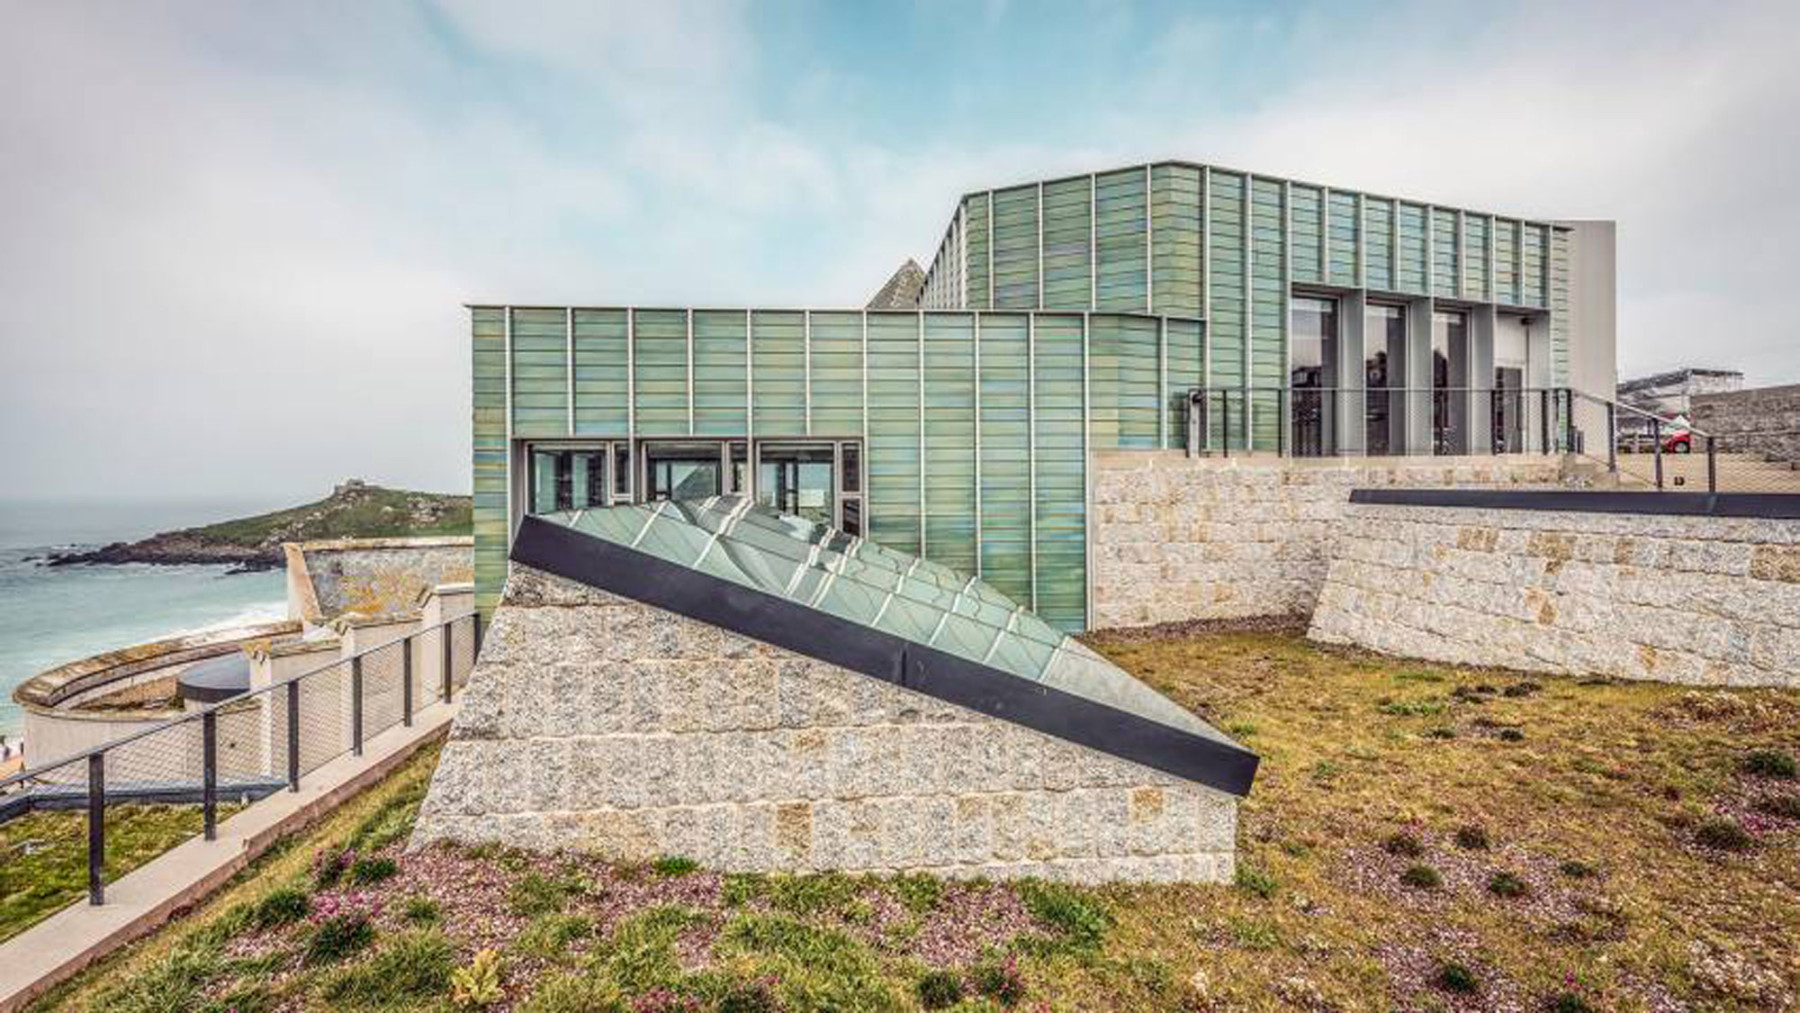 Tate-St-Ives-clifftop-planting-Marc-Atkins-museum-of-the-year-art-fund